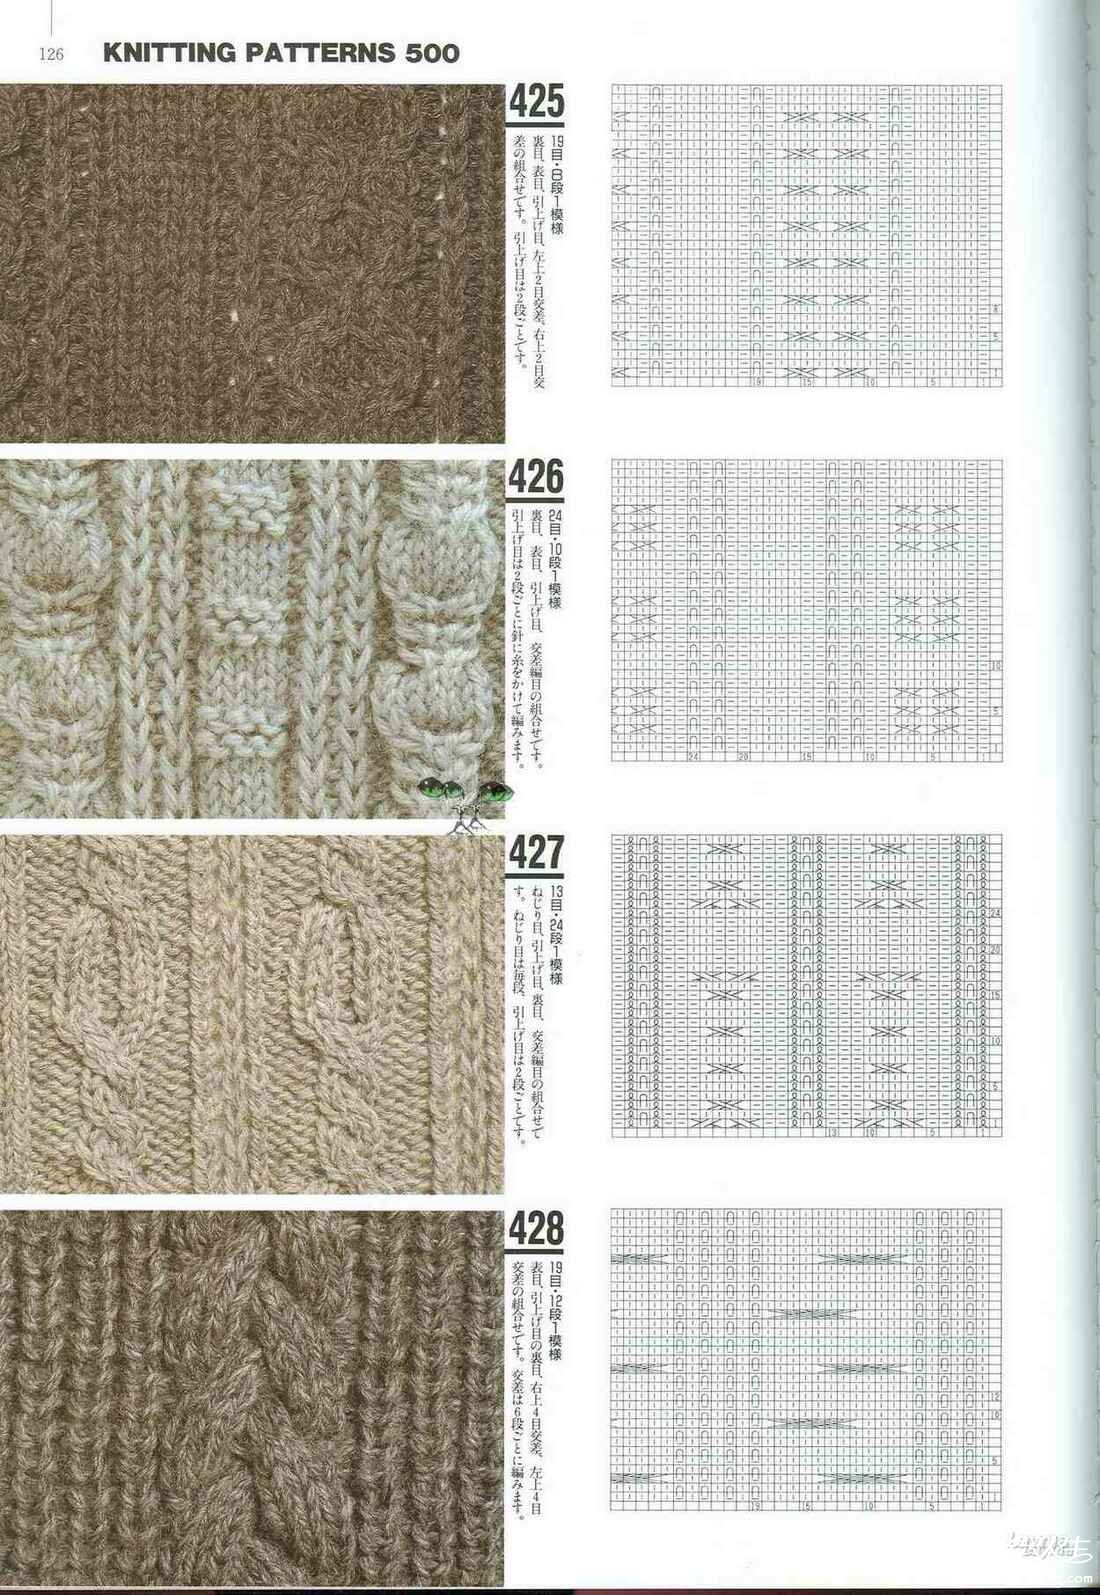 Knitting Patterns 500 123.jpg